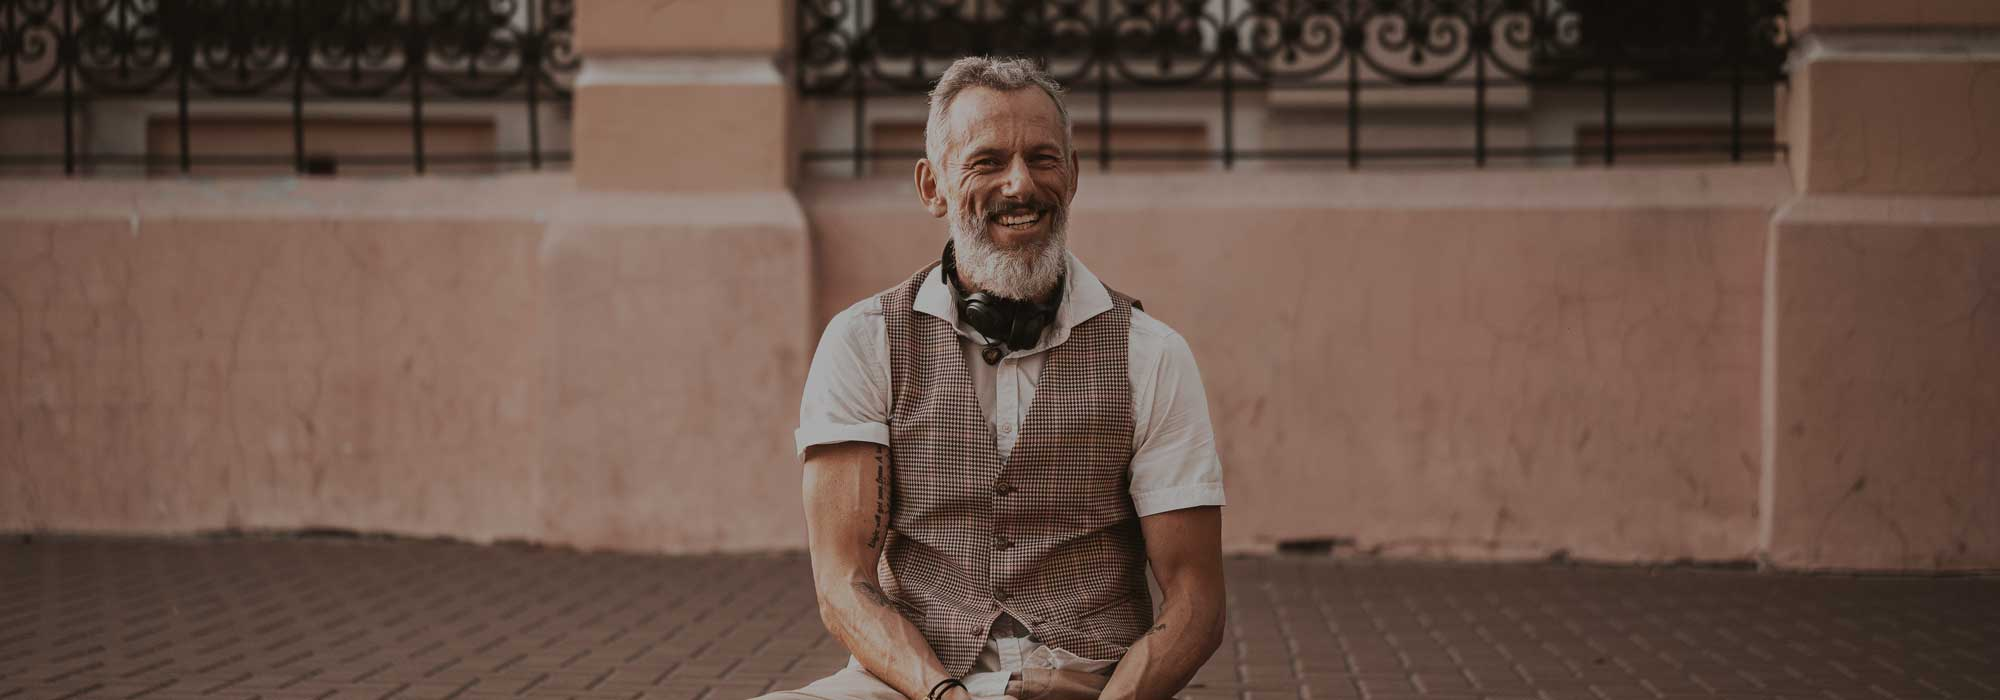 Senior bearded man smiling and sitting on skateboard in waistcoat and white shirt